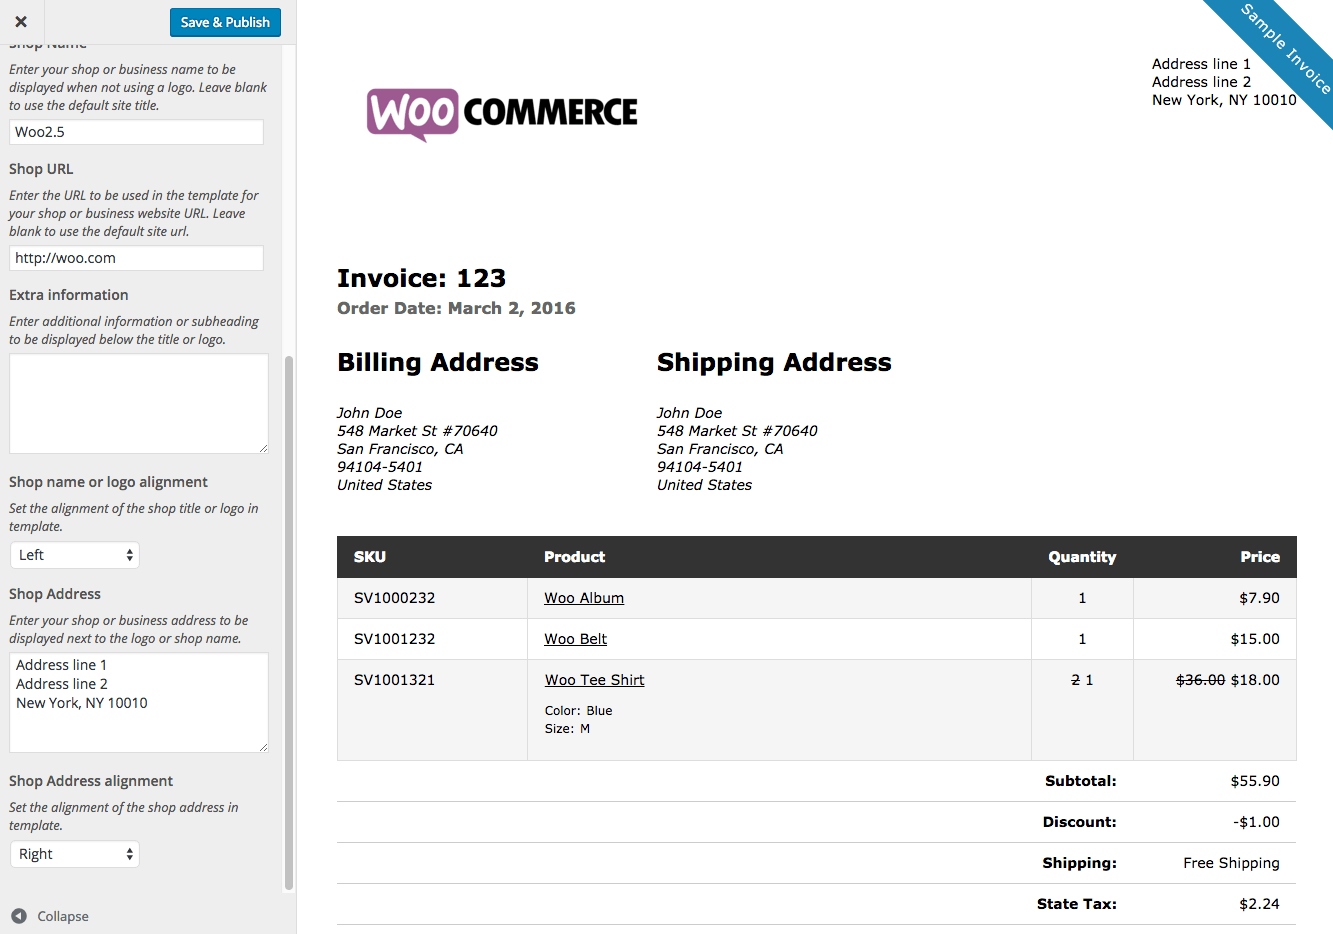 Totallocalus  Fascinating Woocommerce Print Invoices Amp Packing Lists  Woocommerce Docs With Hot Woocommerce Print Invoices  Packing Lists Customizer With Endearing Free Printable Invoice Pdf Also  Nissan Altima Invoice Price In Addition Mazda Invoice And Acura Tl Invoice Price As Well As Commercial Invoice For Shipping Additionally Free Printable Service Invoices From Docswoocommercecom With Totallocalus  Hot Woocommerce Print Invoices Amp Packing Lists  Woocommerce Docs With Endearing Woocommerce Print Invoices  Packing Lists Customizer And Fascinating Free Printable Invoice Pdf Also  Nissan Altima Invoice Price In Addition Mazda Invoice From Docswoocommercecom